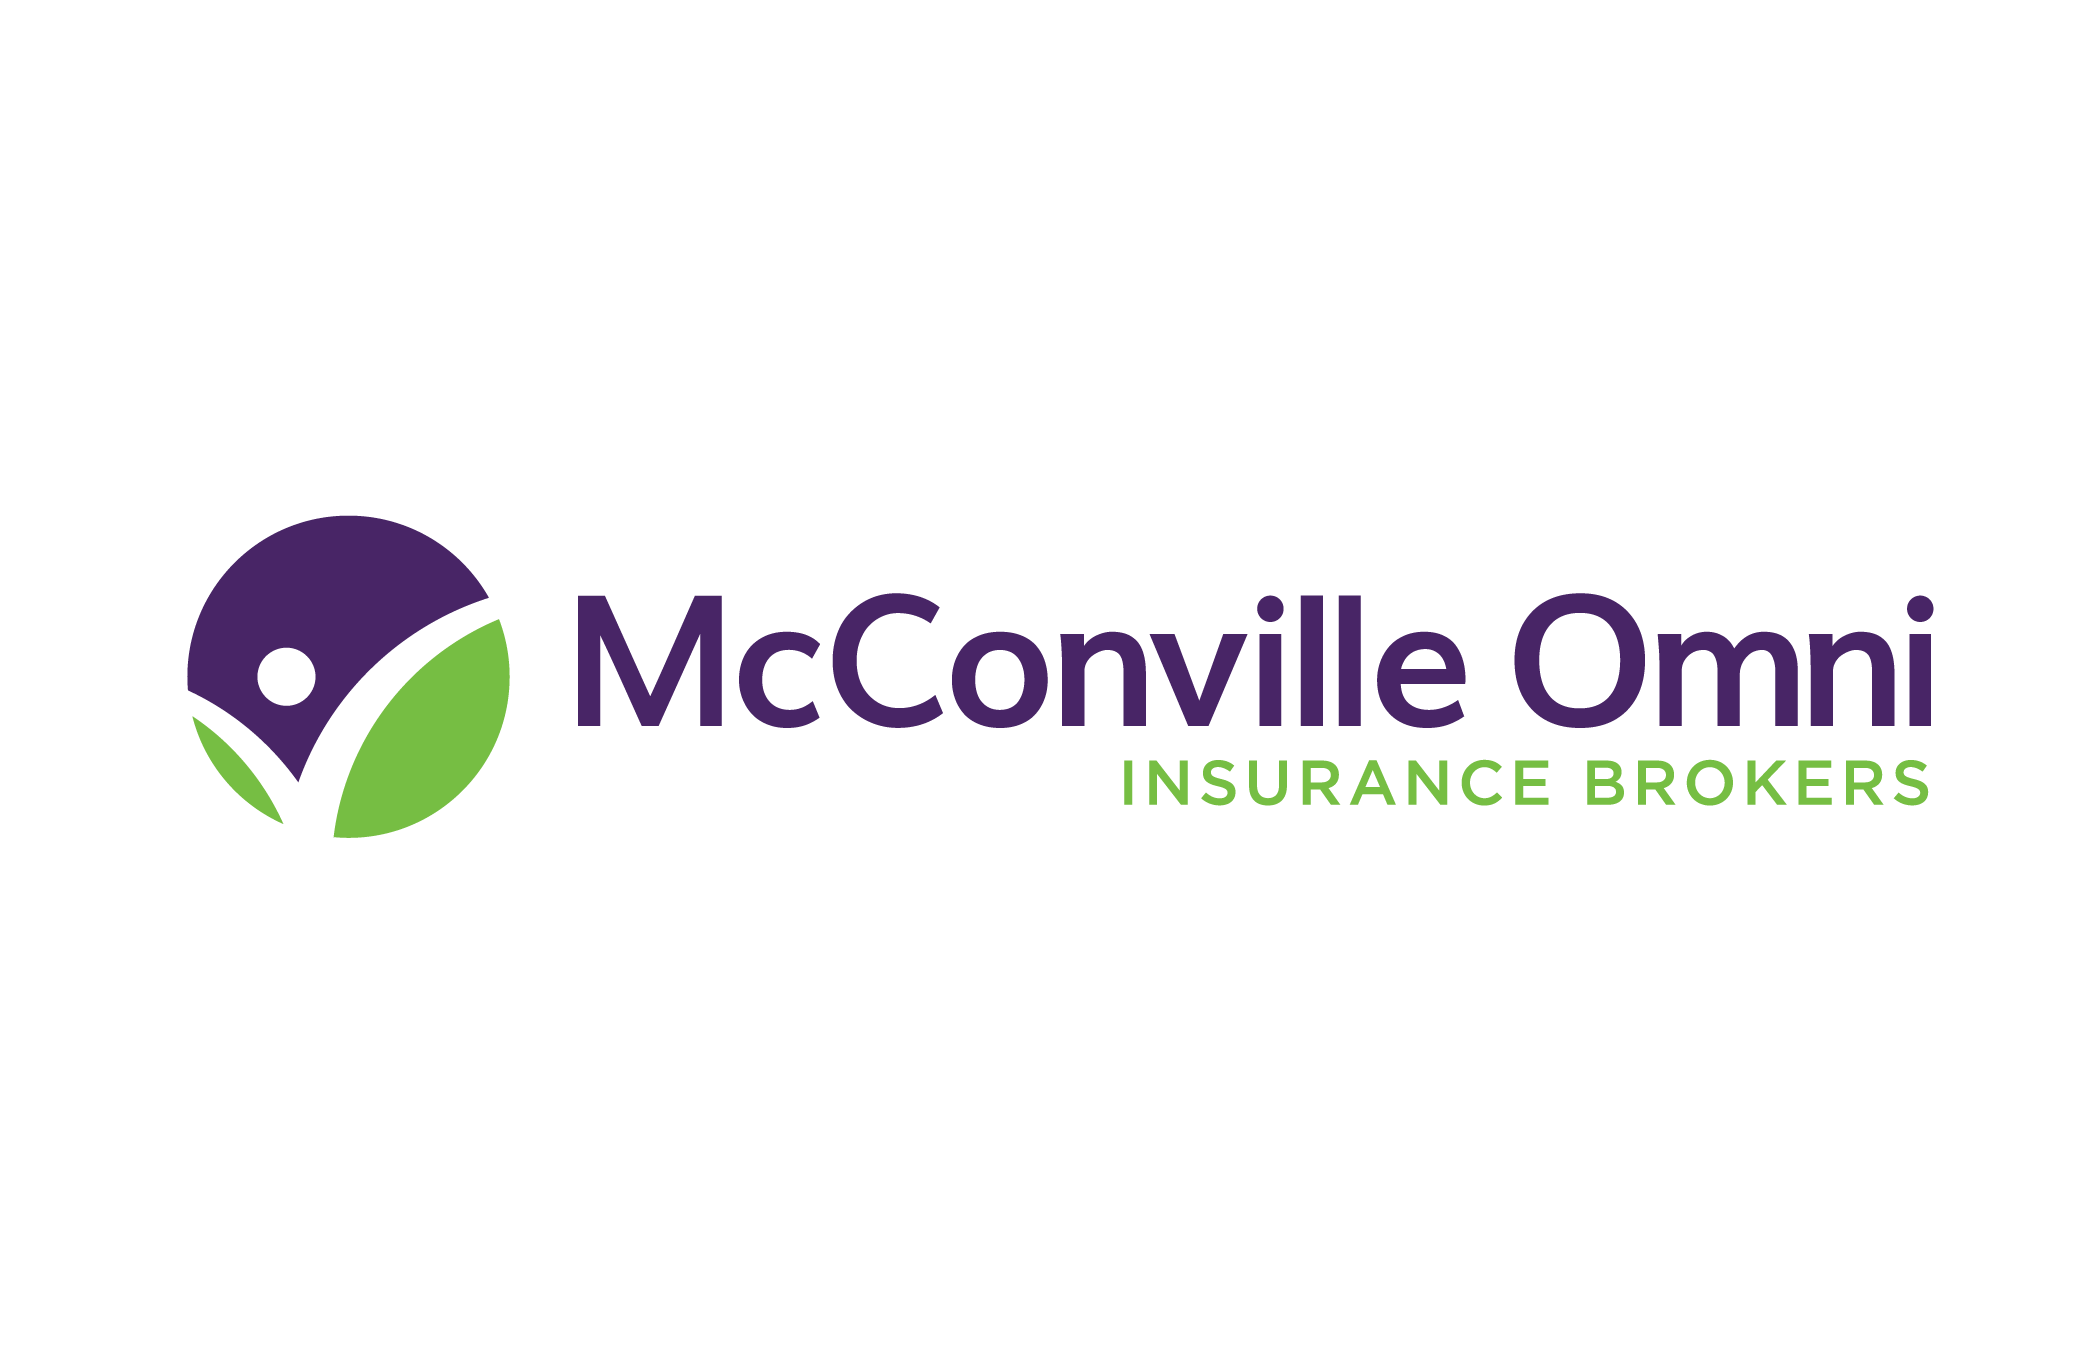 McConville Omni Insurance Brokers logo